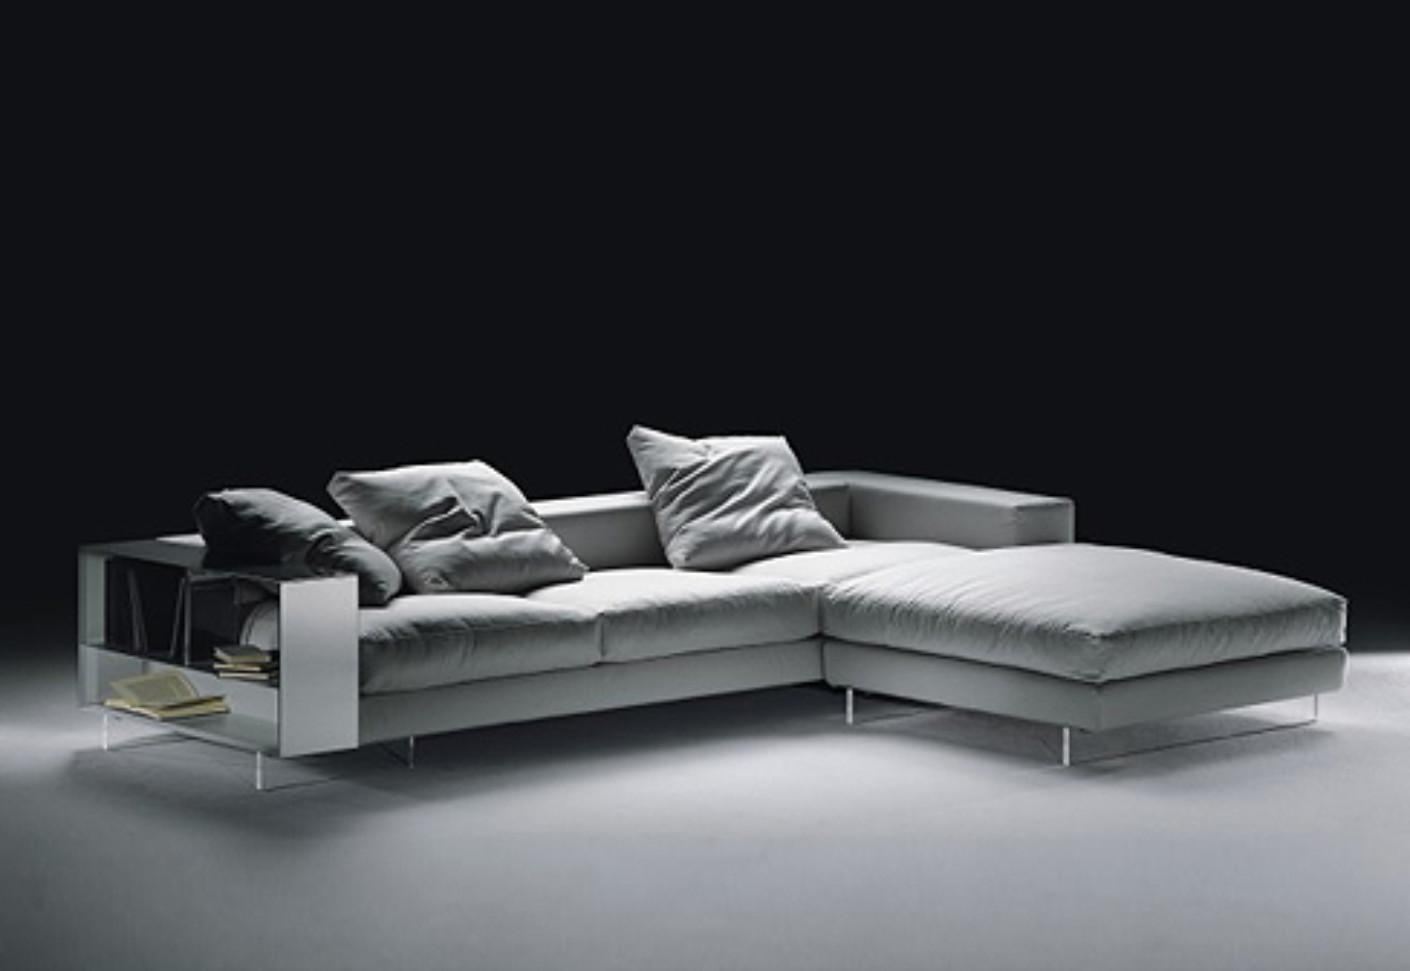 Lightpiece Sofaflexform | Stylepark Pertaining To Flexform Sofas (Image 12 of 20)